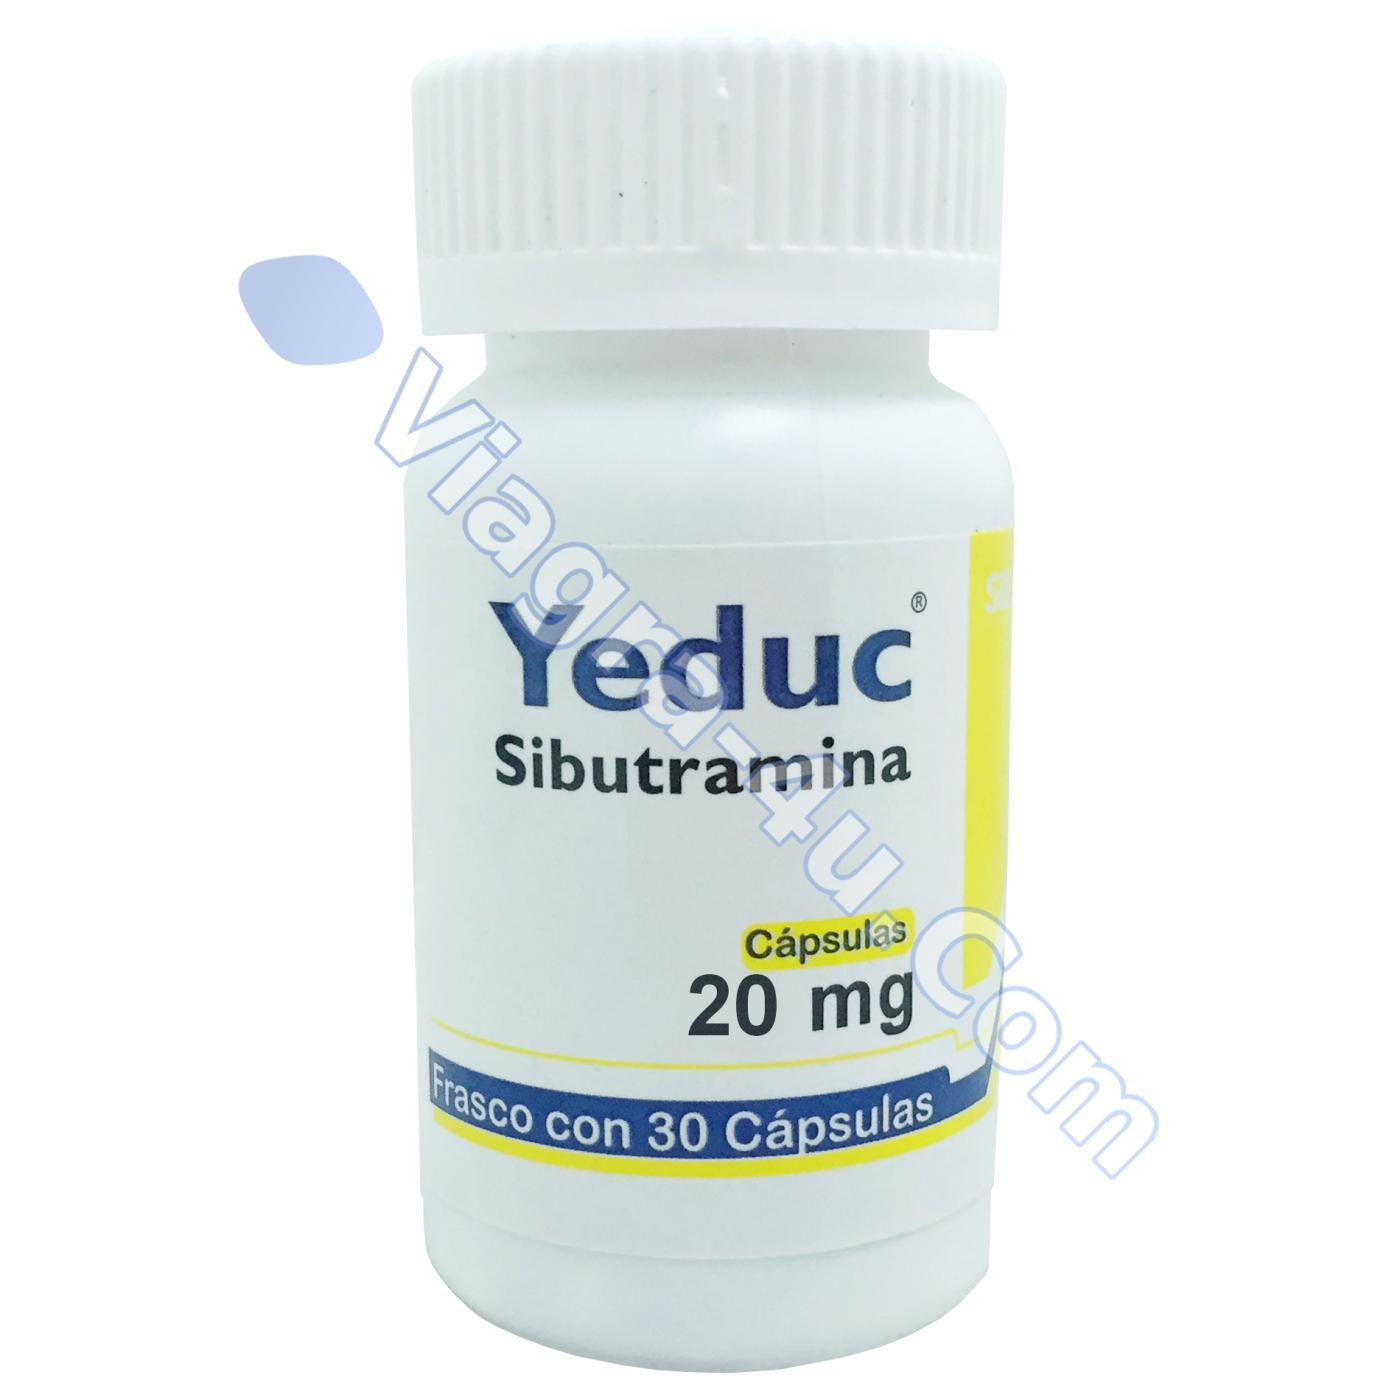 Cheap herbal phentermine - Generic Reductil Sibutramine Yeduc 20mg